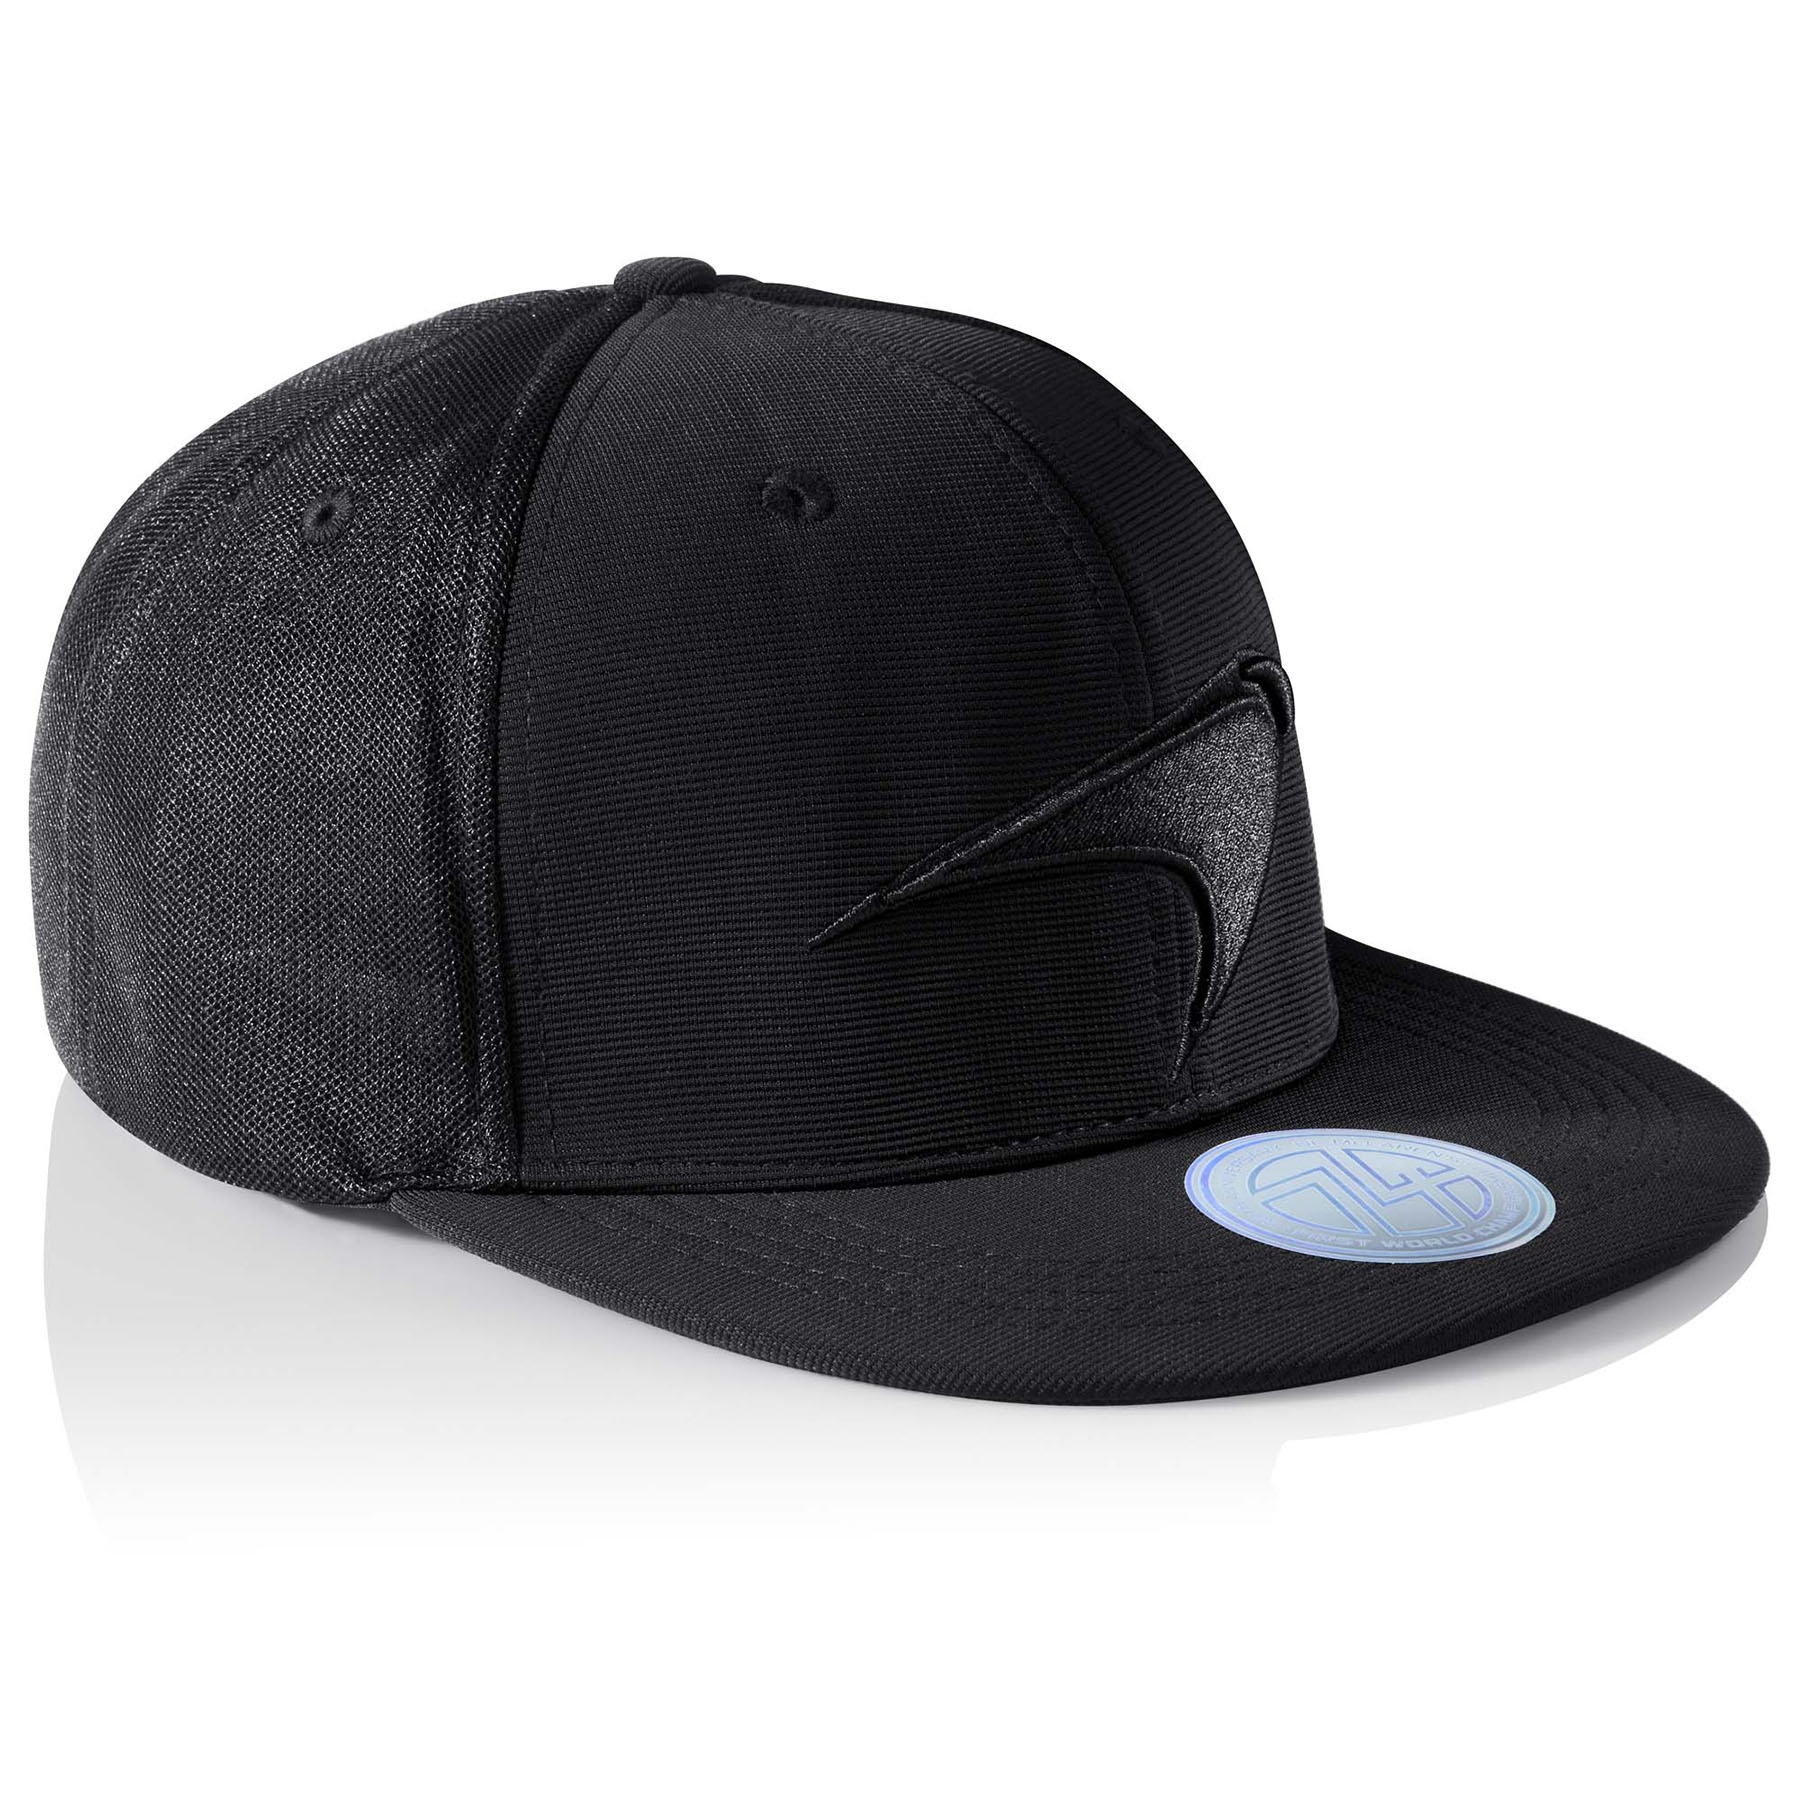 McLaren Mercedes Fashion Cap